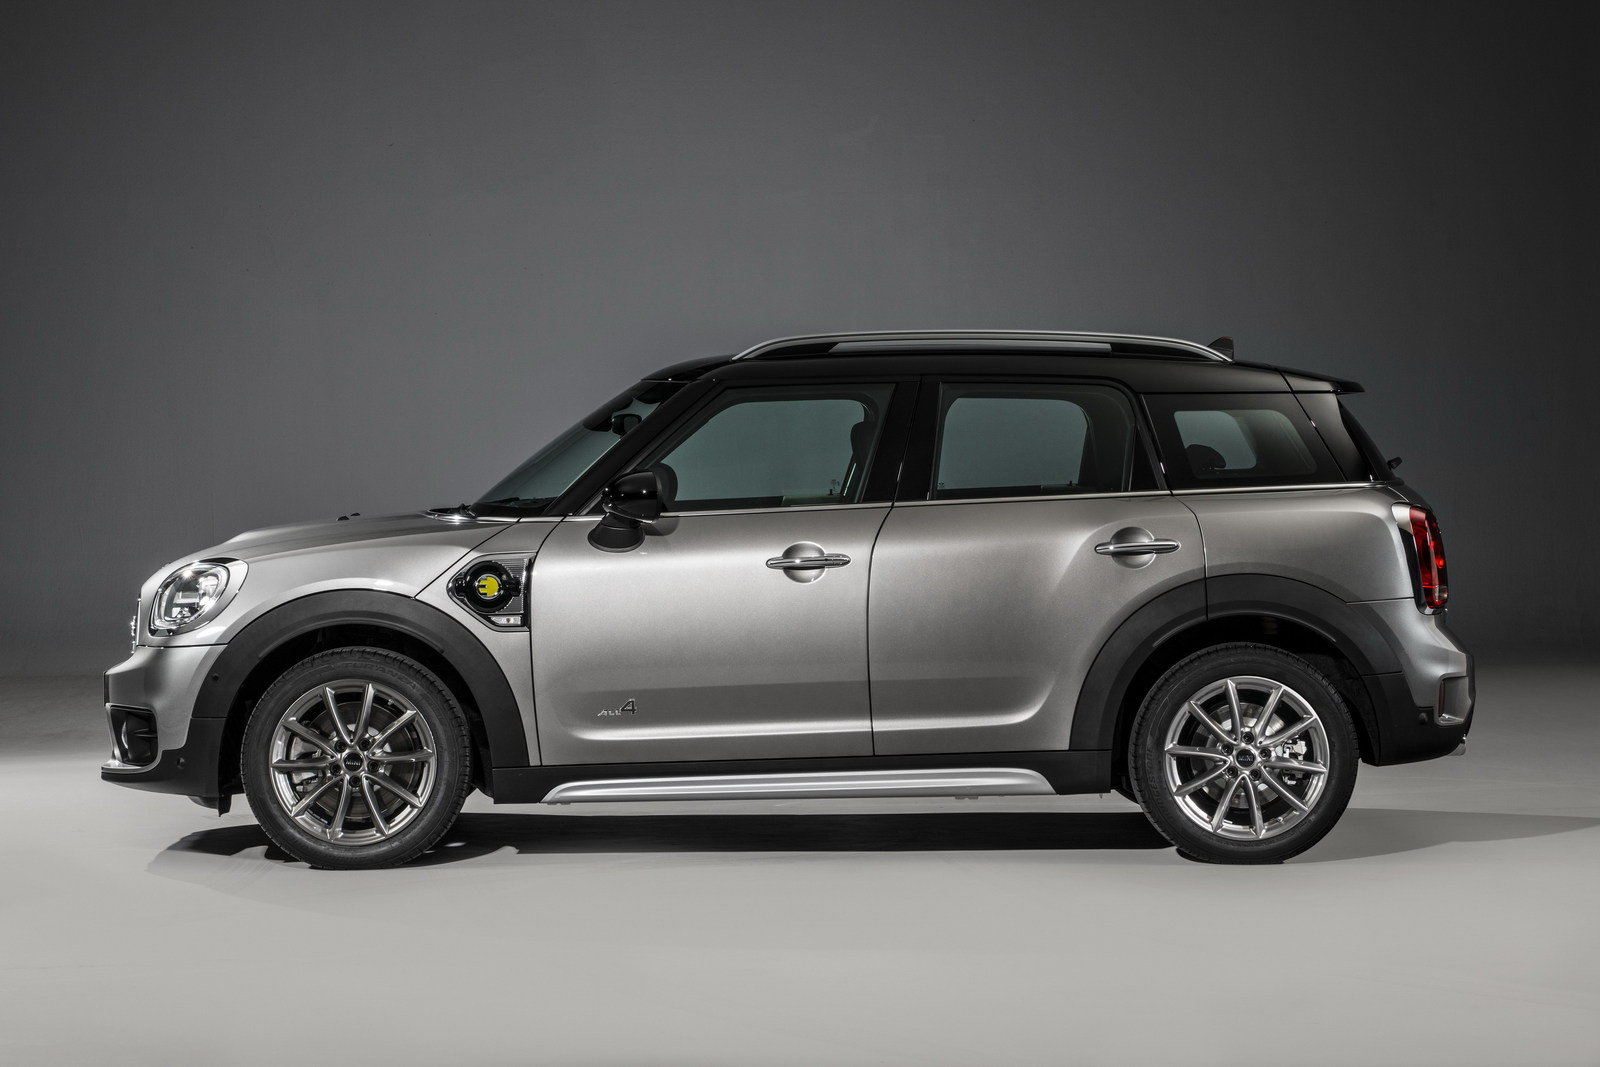 2017 mini cooper s e countryman all4 picture 693236 car review top speed. Black Bedroom Furniture Sets. Home Design Ideas